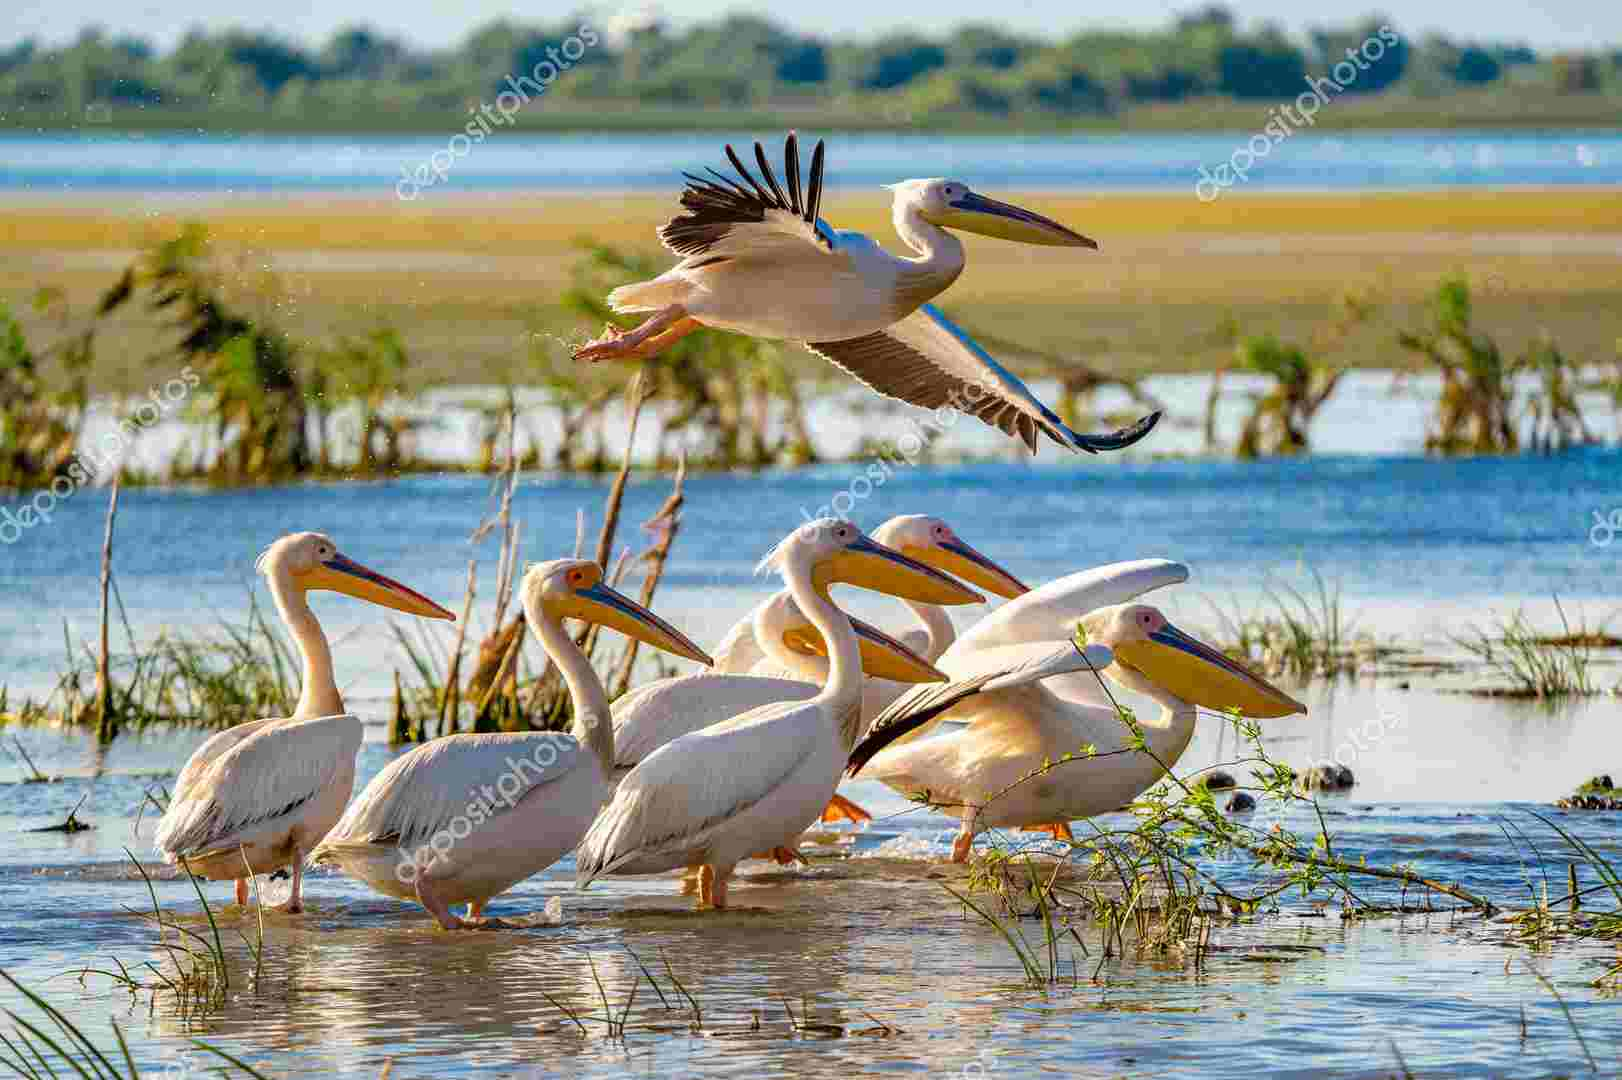 Birdwatching in Danube Delta. The Great White Pelican flying ove